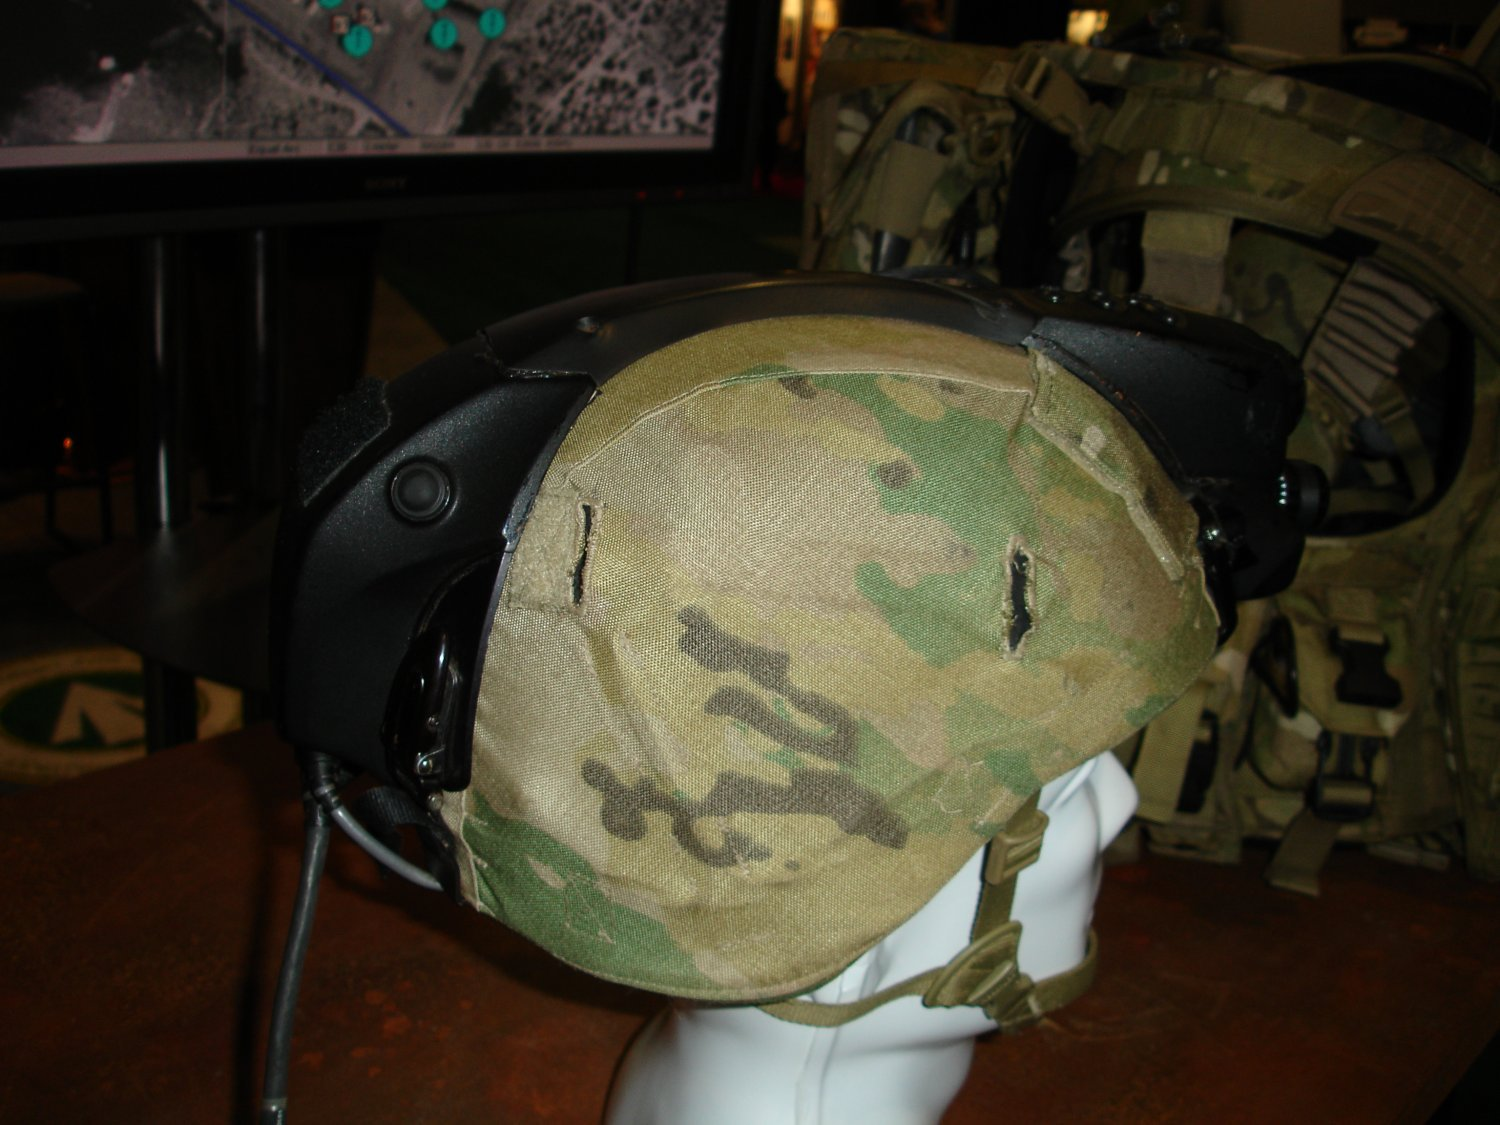 AUSAWinterSymposiumandExhibition2007 FutureForceWarrior RockwellCollinsFusedSensorHMD 2 <!  :en  >Infrared/Night Vision Fusion HMD Developed for Future Force Warrior (FFW)<!  :  >